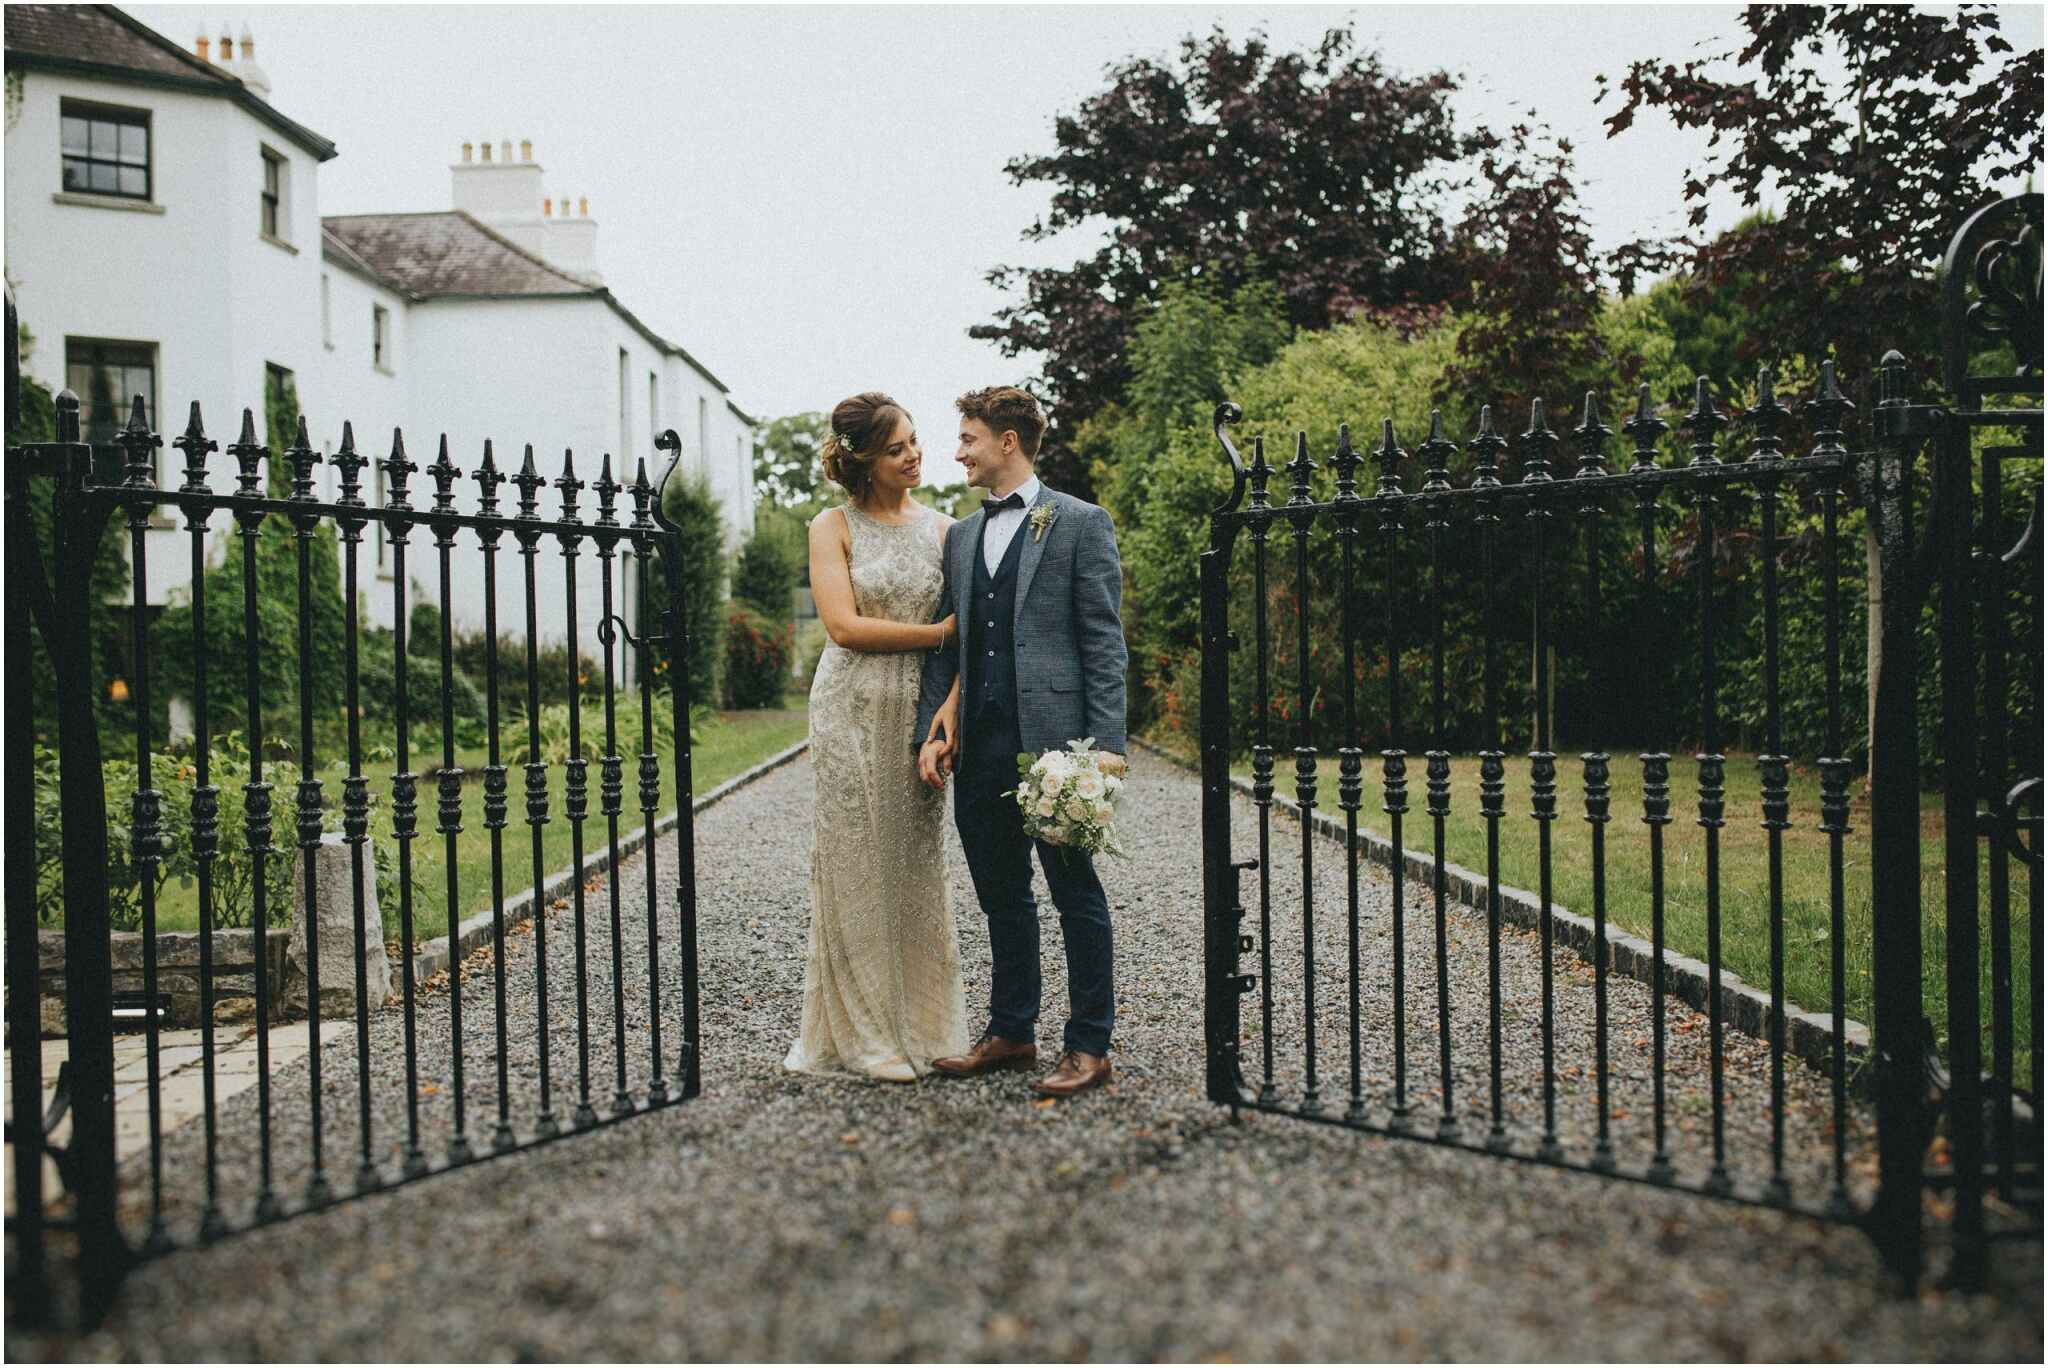 Sharon + Rob – Barberstown Castle 71